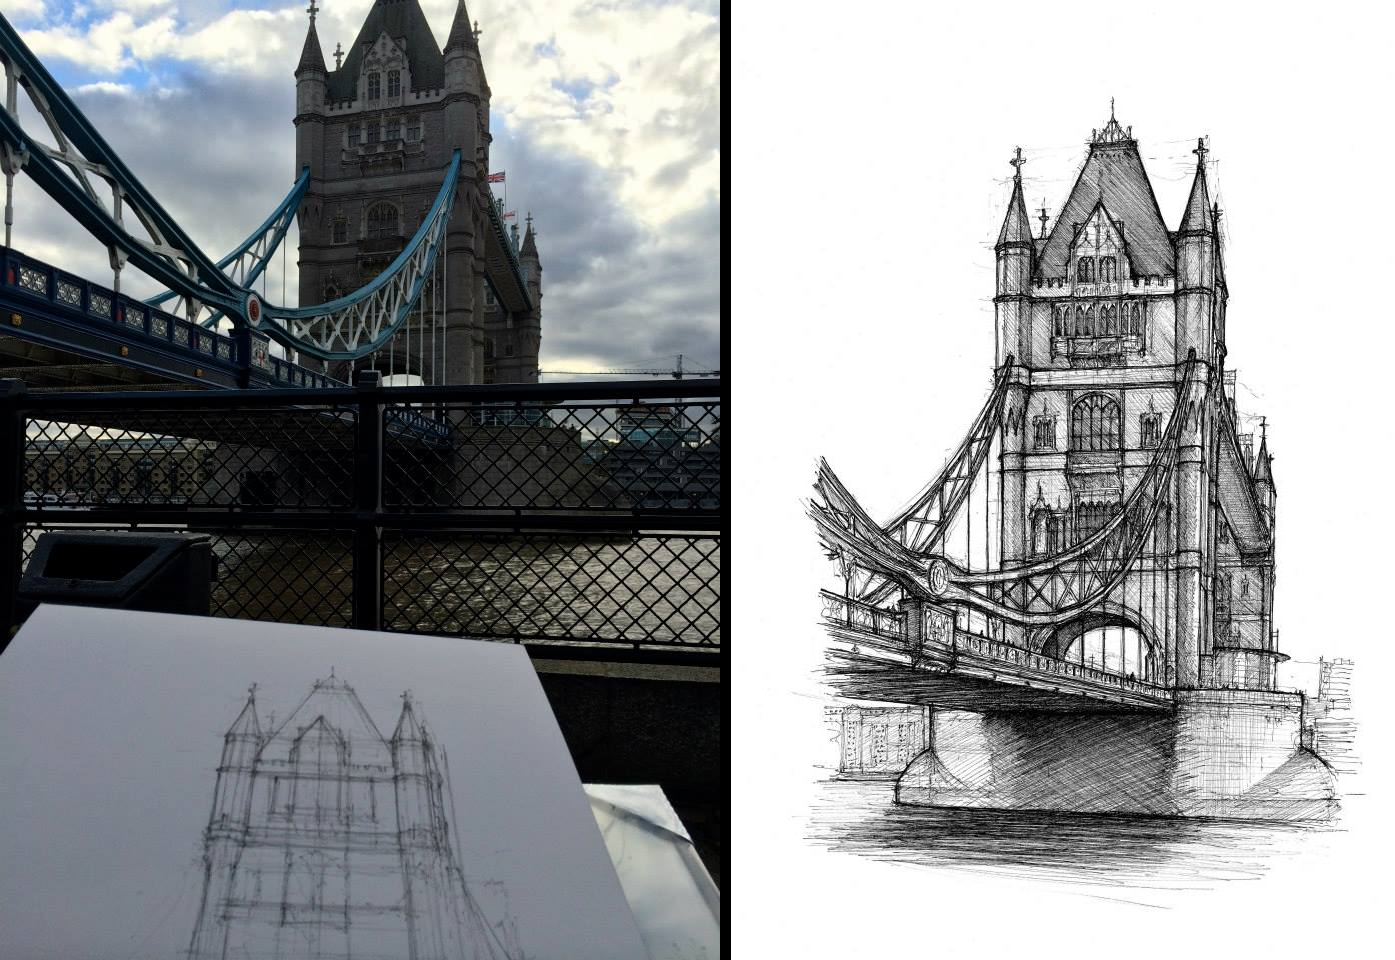 07-Tower-Bridge-Luke-Adam-Hawker-Creating-Architectural-Drawings-on-Location-www-designstack-co